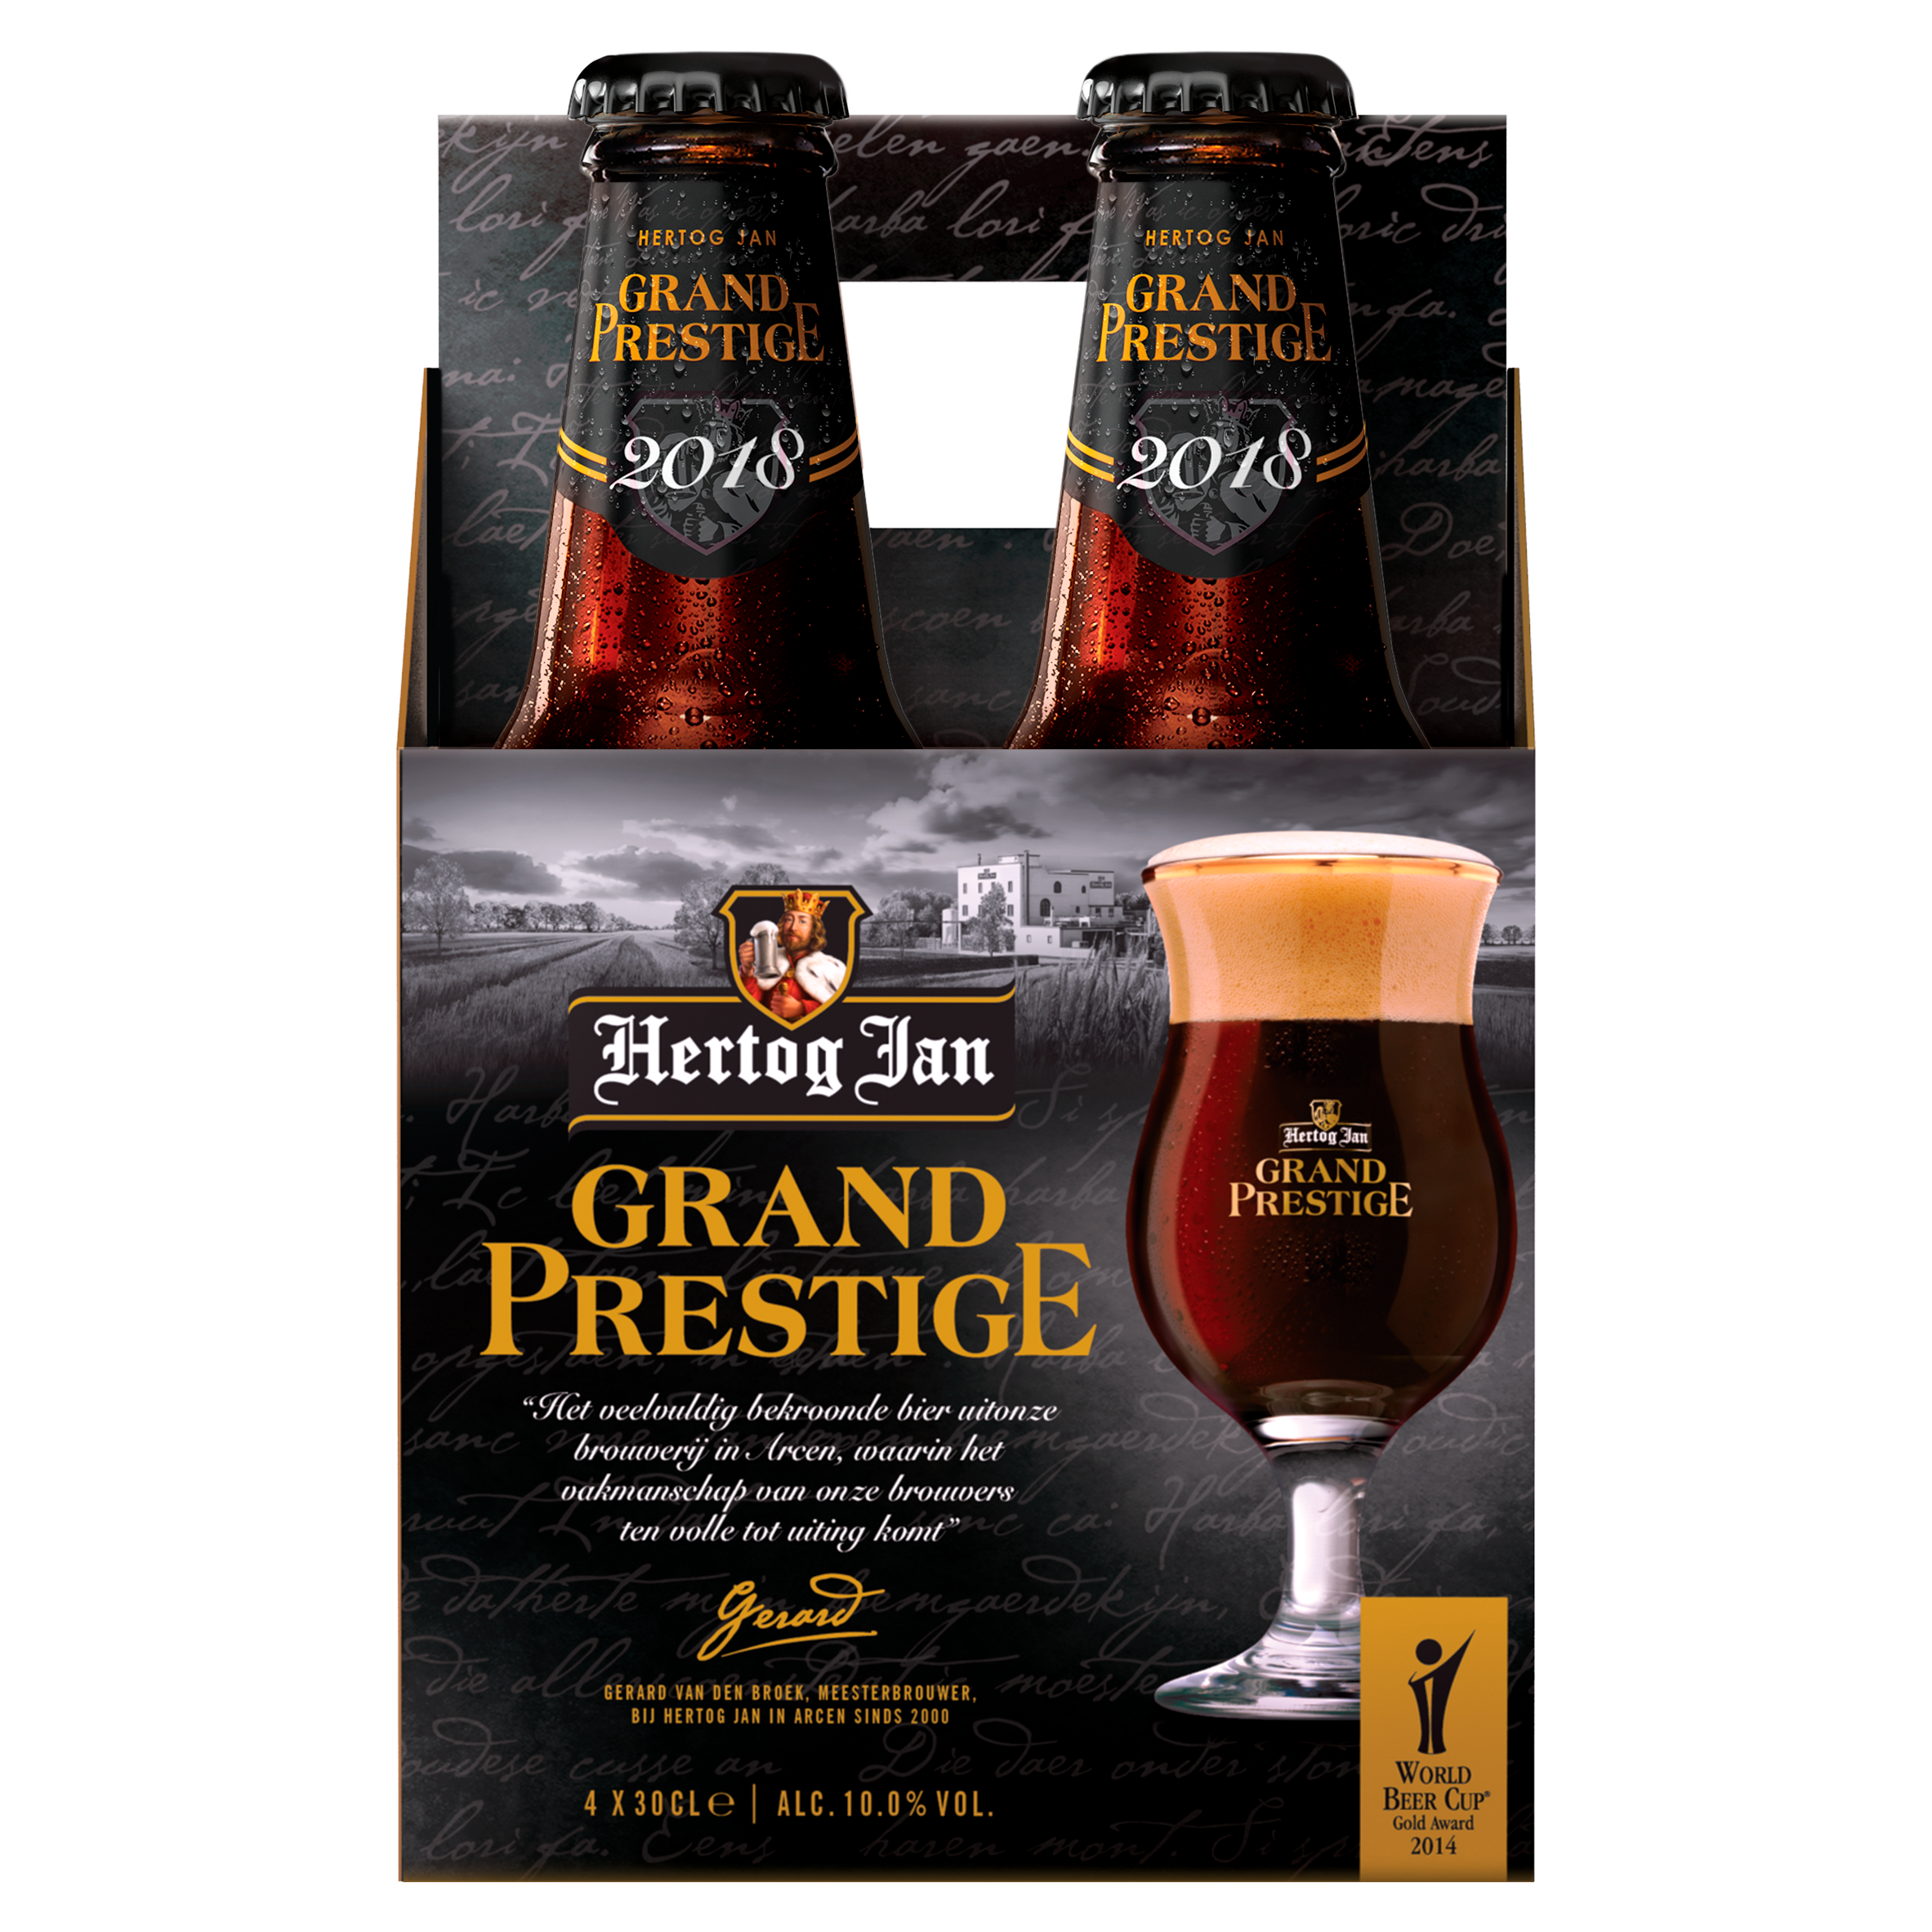 Hertog Jan Grand Prestige Bier Flessen 4 x 30 cl